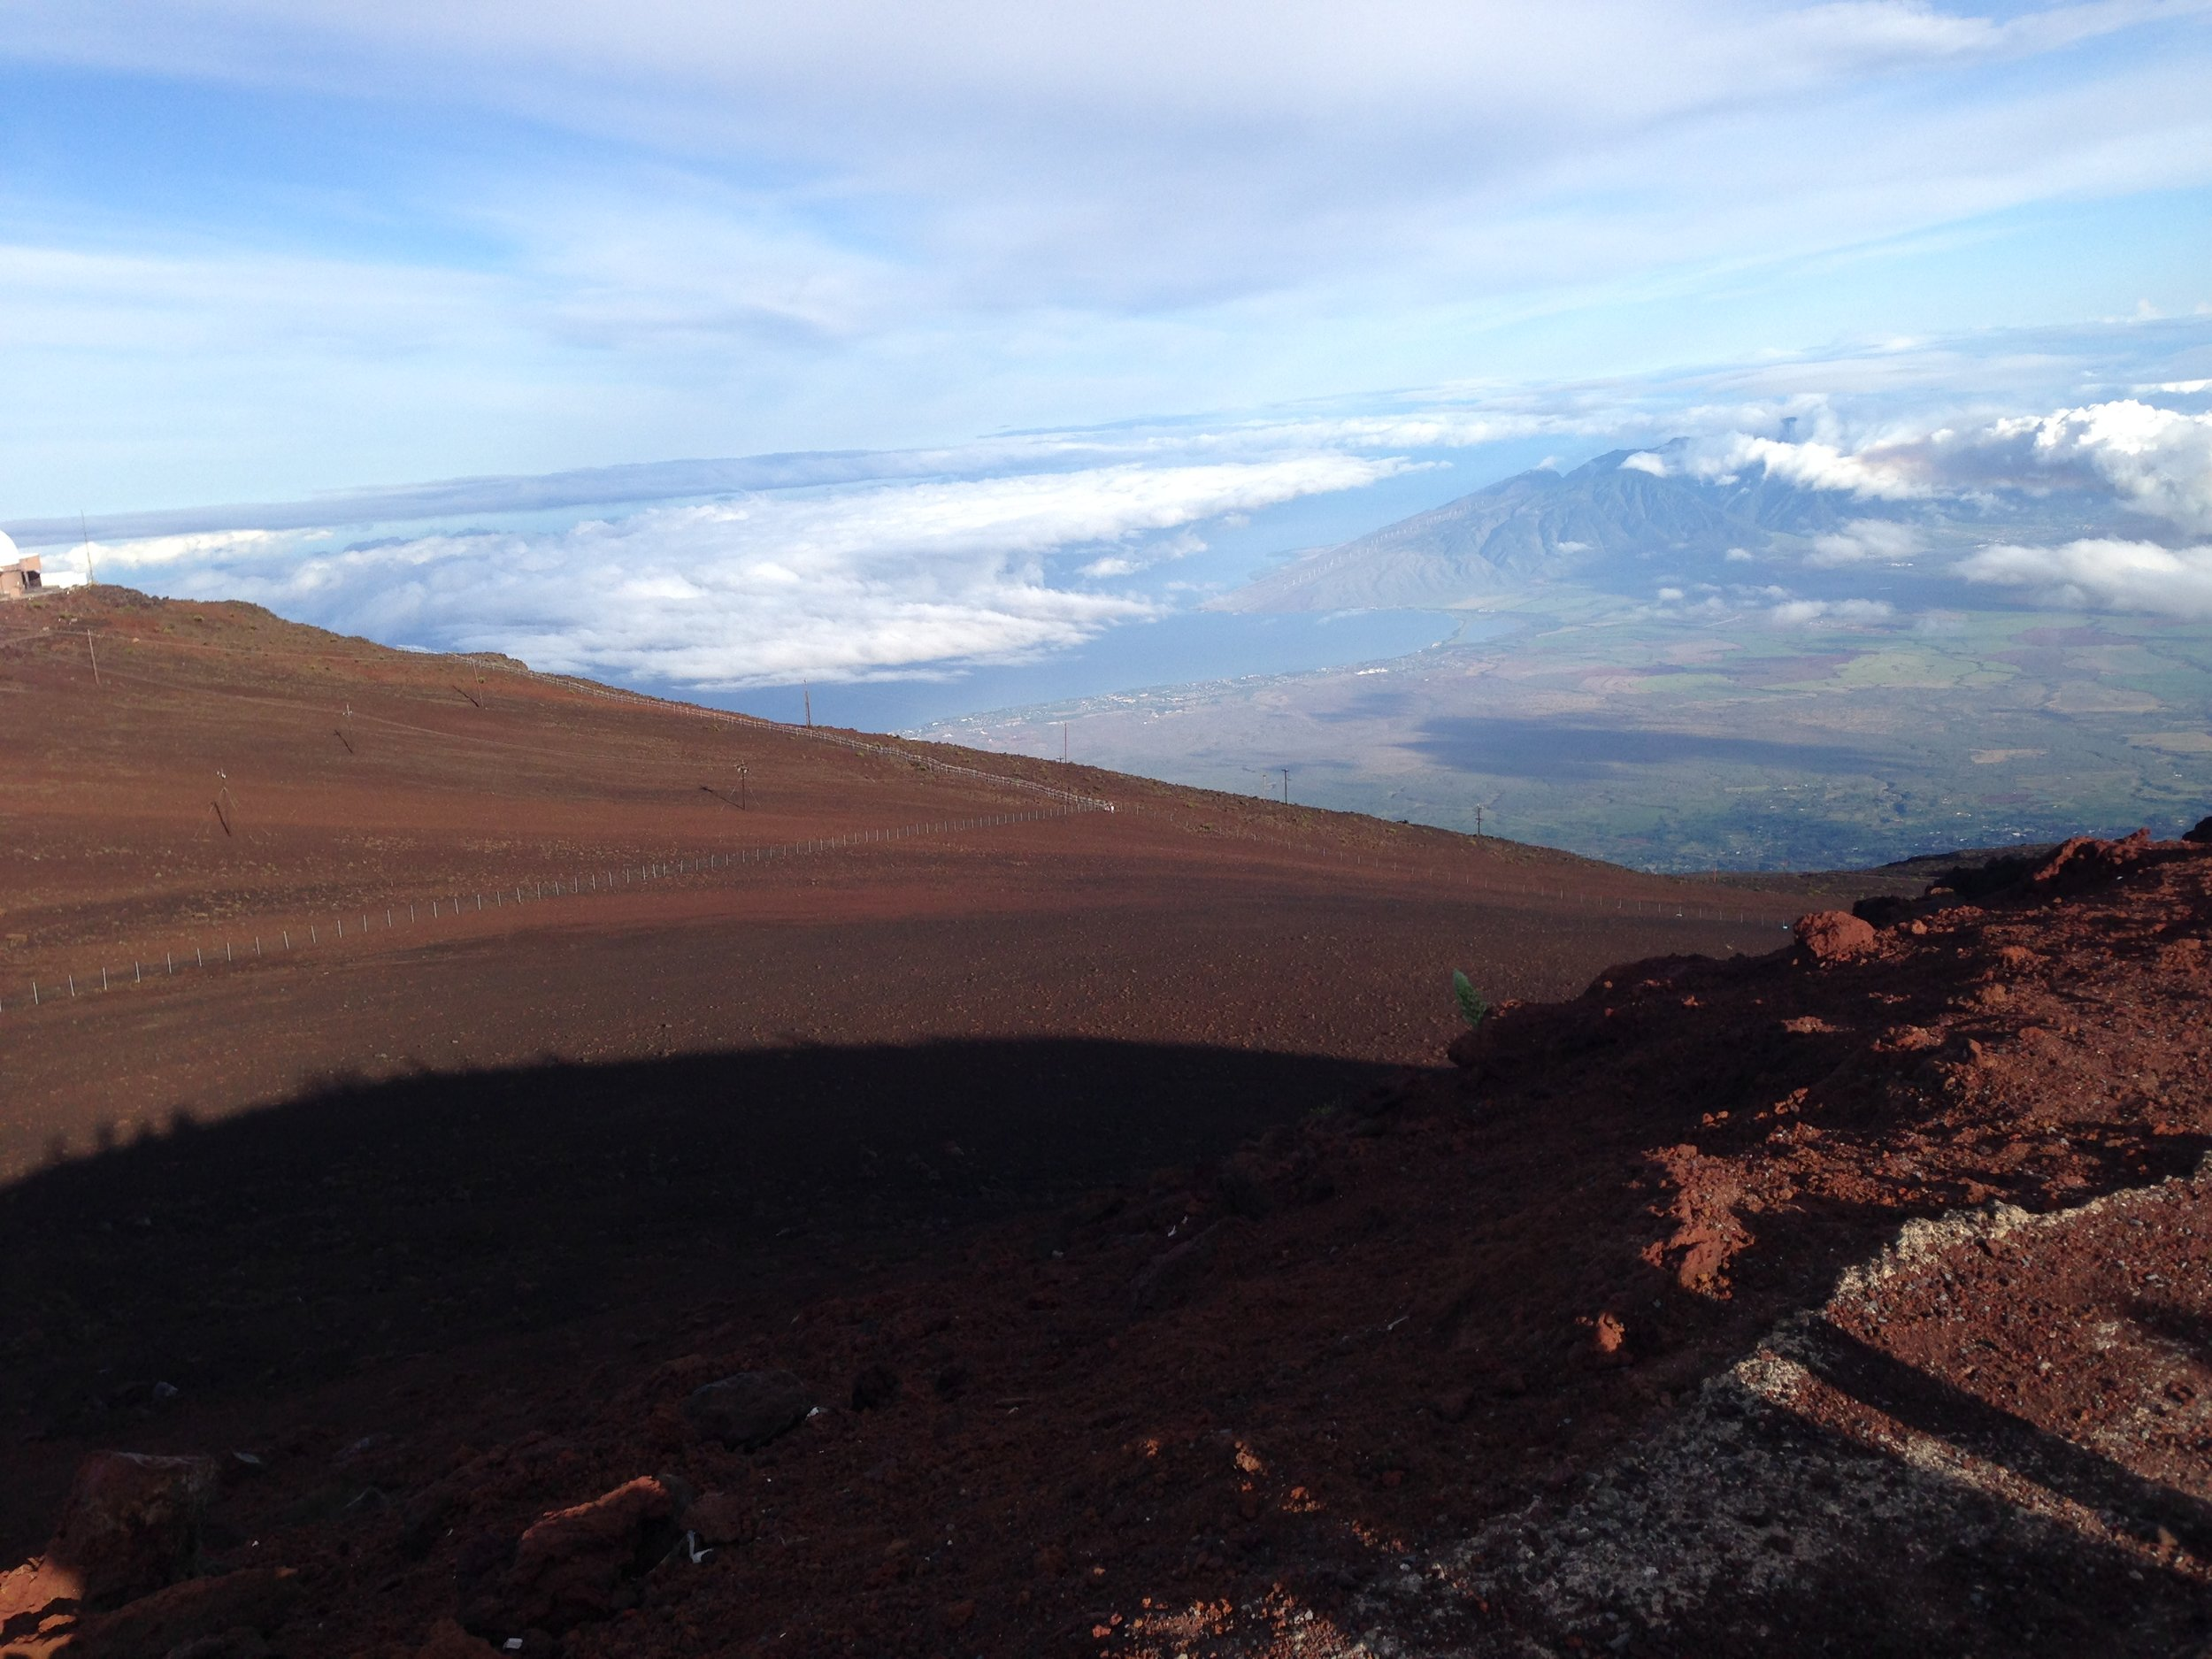 Haleakala National Park in Maui, Hawaii when the sun finally decided to show up!